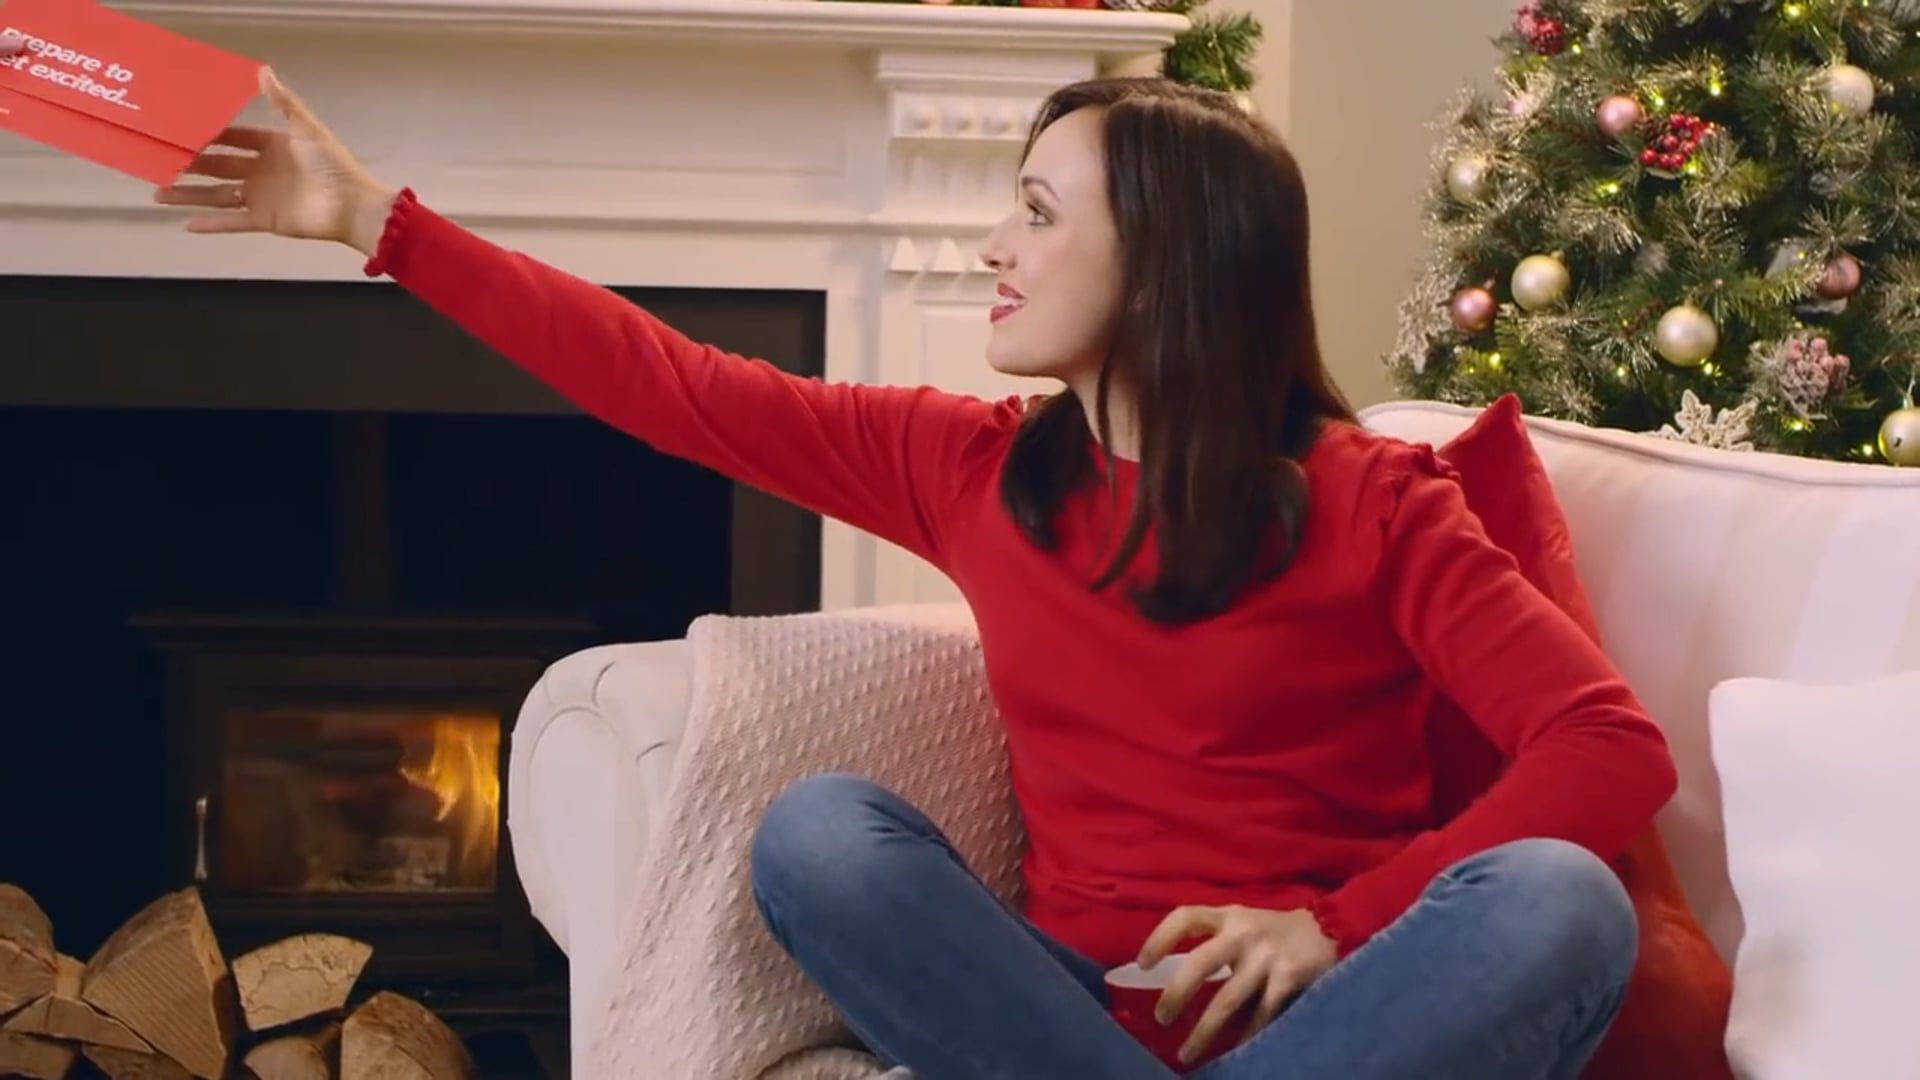 Virgin Experience Days GiftDreams Afternoon Tea Christmas Advert 2018 - Author Productions Post Production House, London, UK